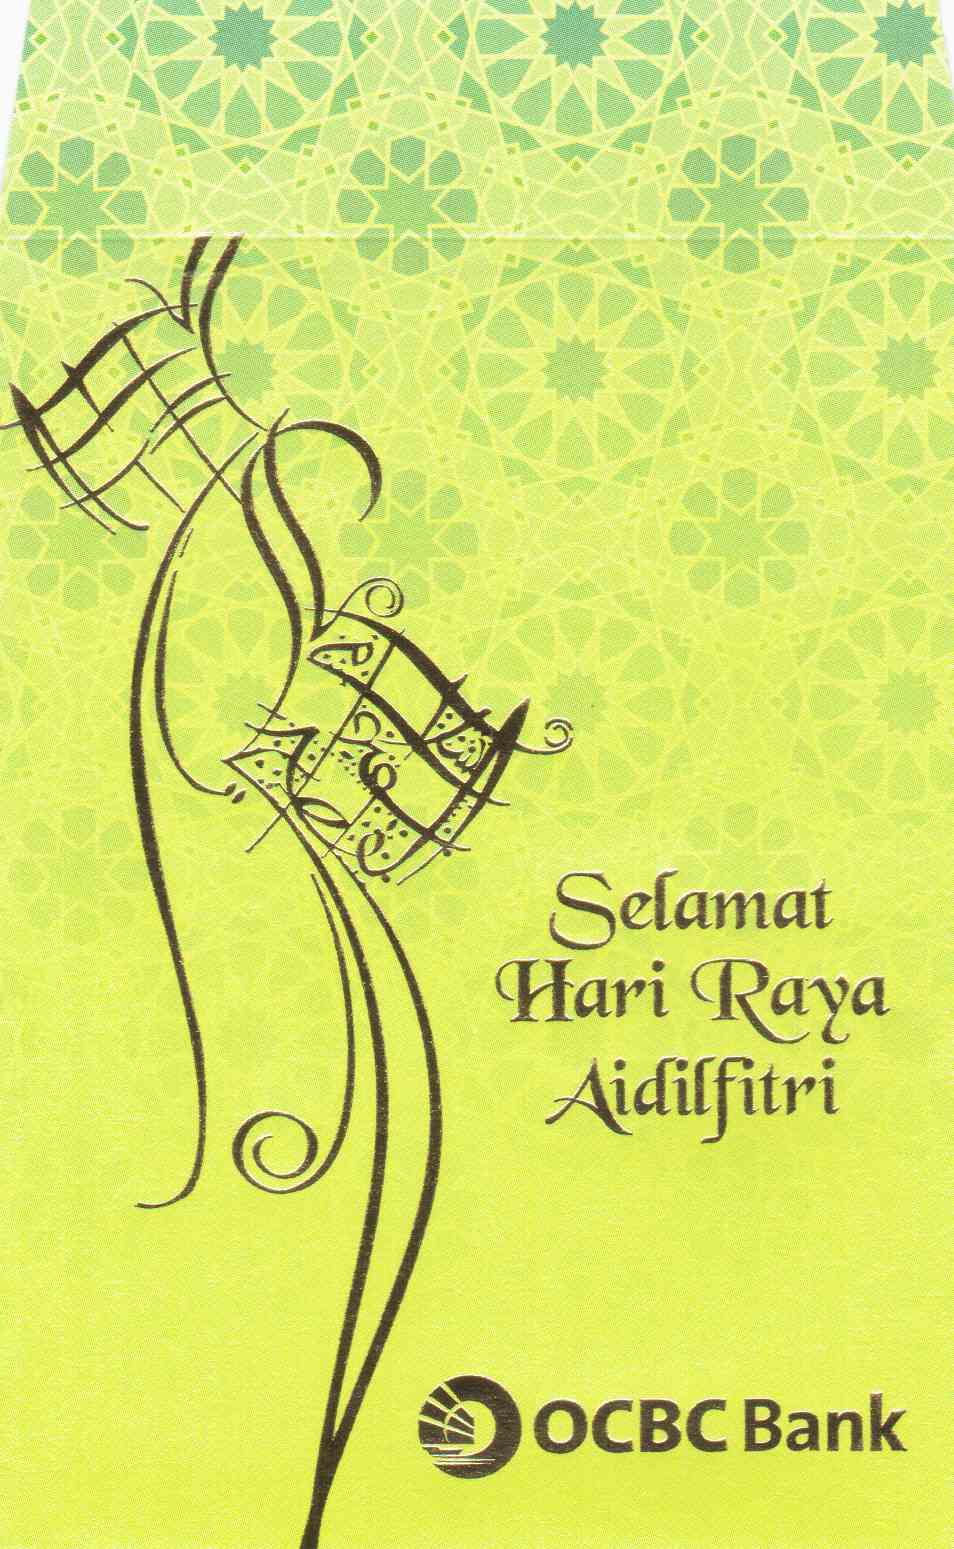 short essay about hari raya aidilfitri Spm essay about hari raya puasa, traditional hari raya foods you must eat this festive season celebrate raya the right way with the best foods that 14 top buka puasa buffets you must try karangan sambutan hari raya aidilfitri essays and karangan sambutan hari raya aidilfitri during the hari raya holidays they worry.